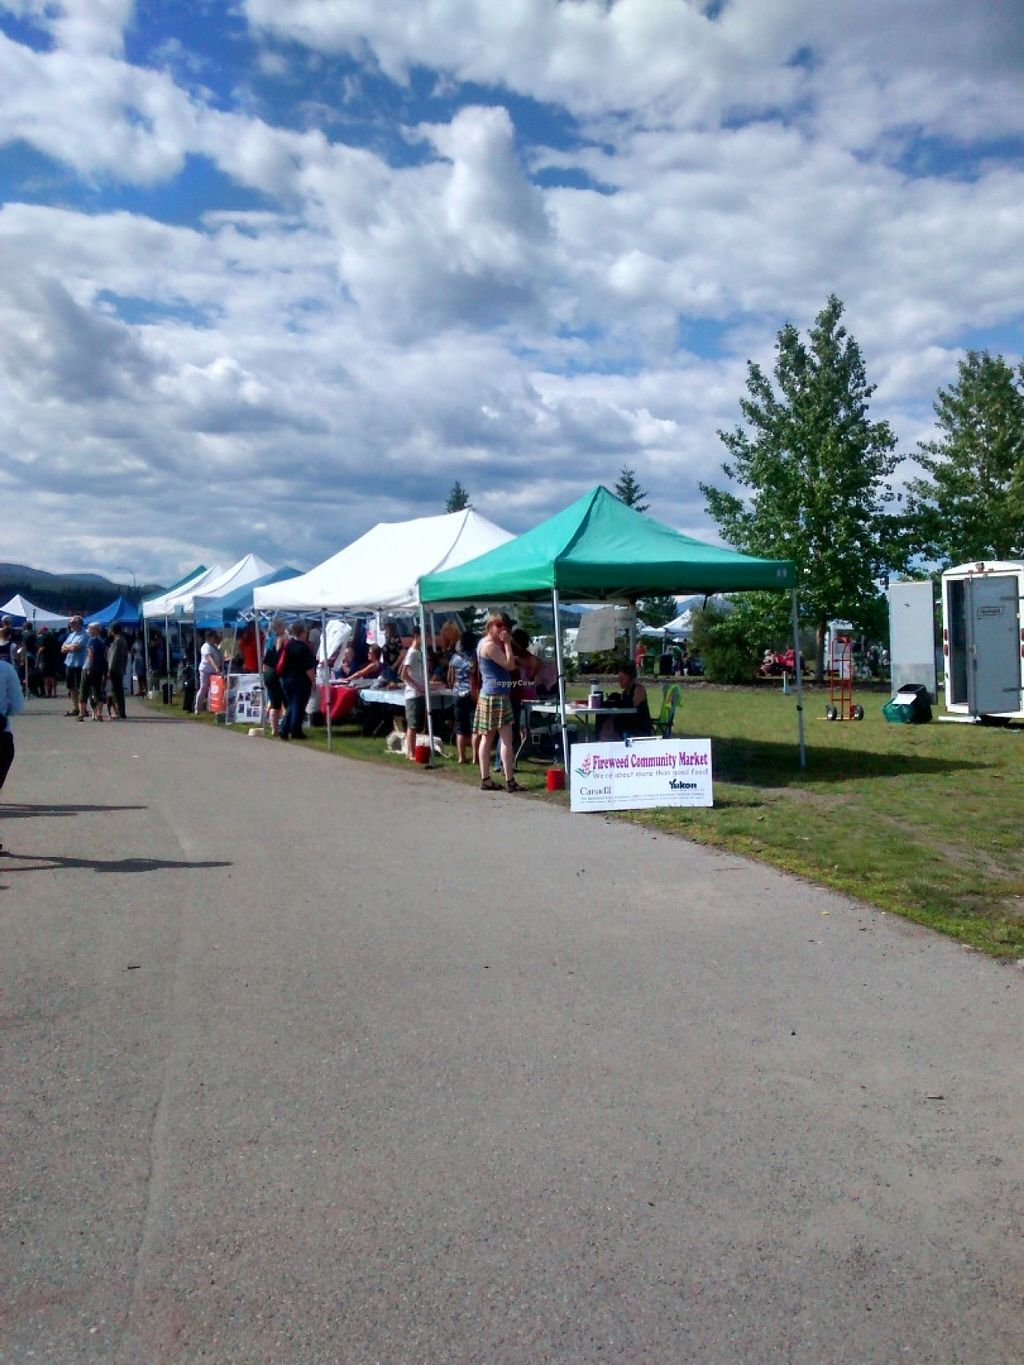 "Photo of Fireweed Community Market   by <a href=""/members/profile/QuothTheRaven"">QuothTheRaven</a> <br/>Market <br/> June 17, 2016  - <a href='/contact/abuse/image/75106/154385'>Report</a>"